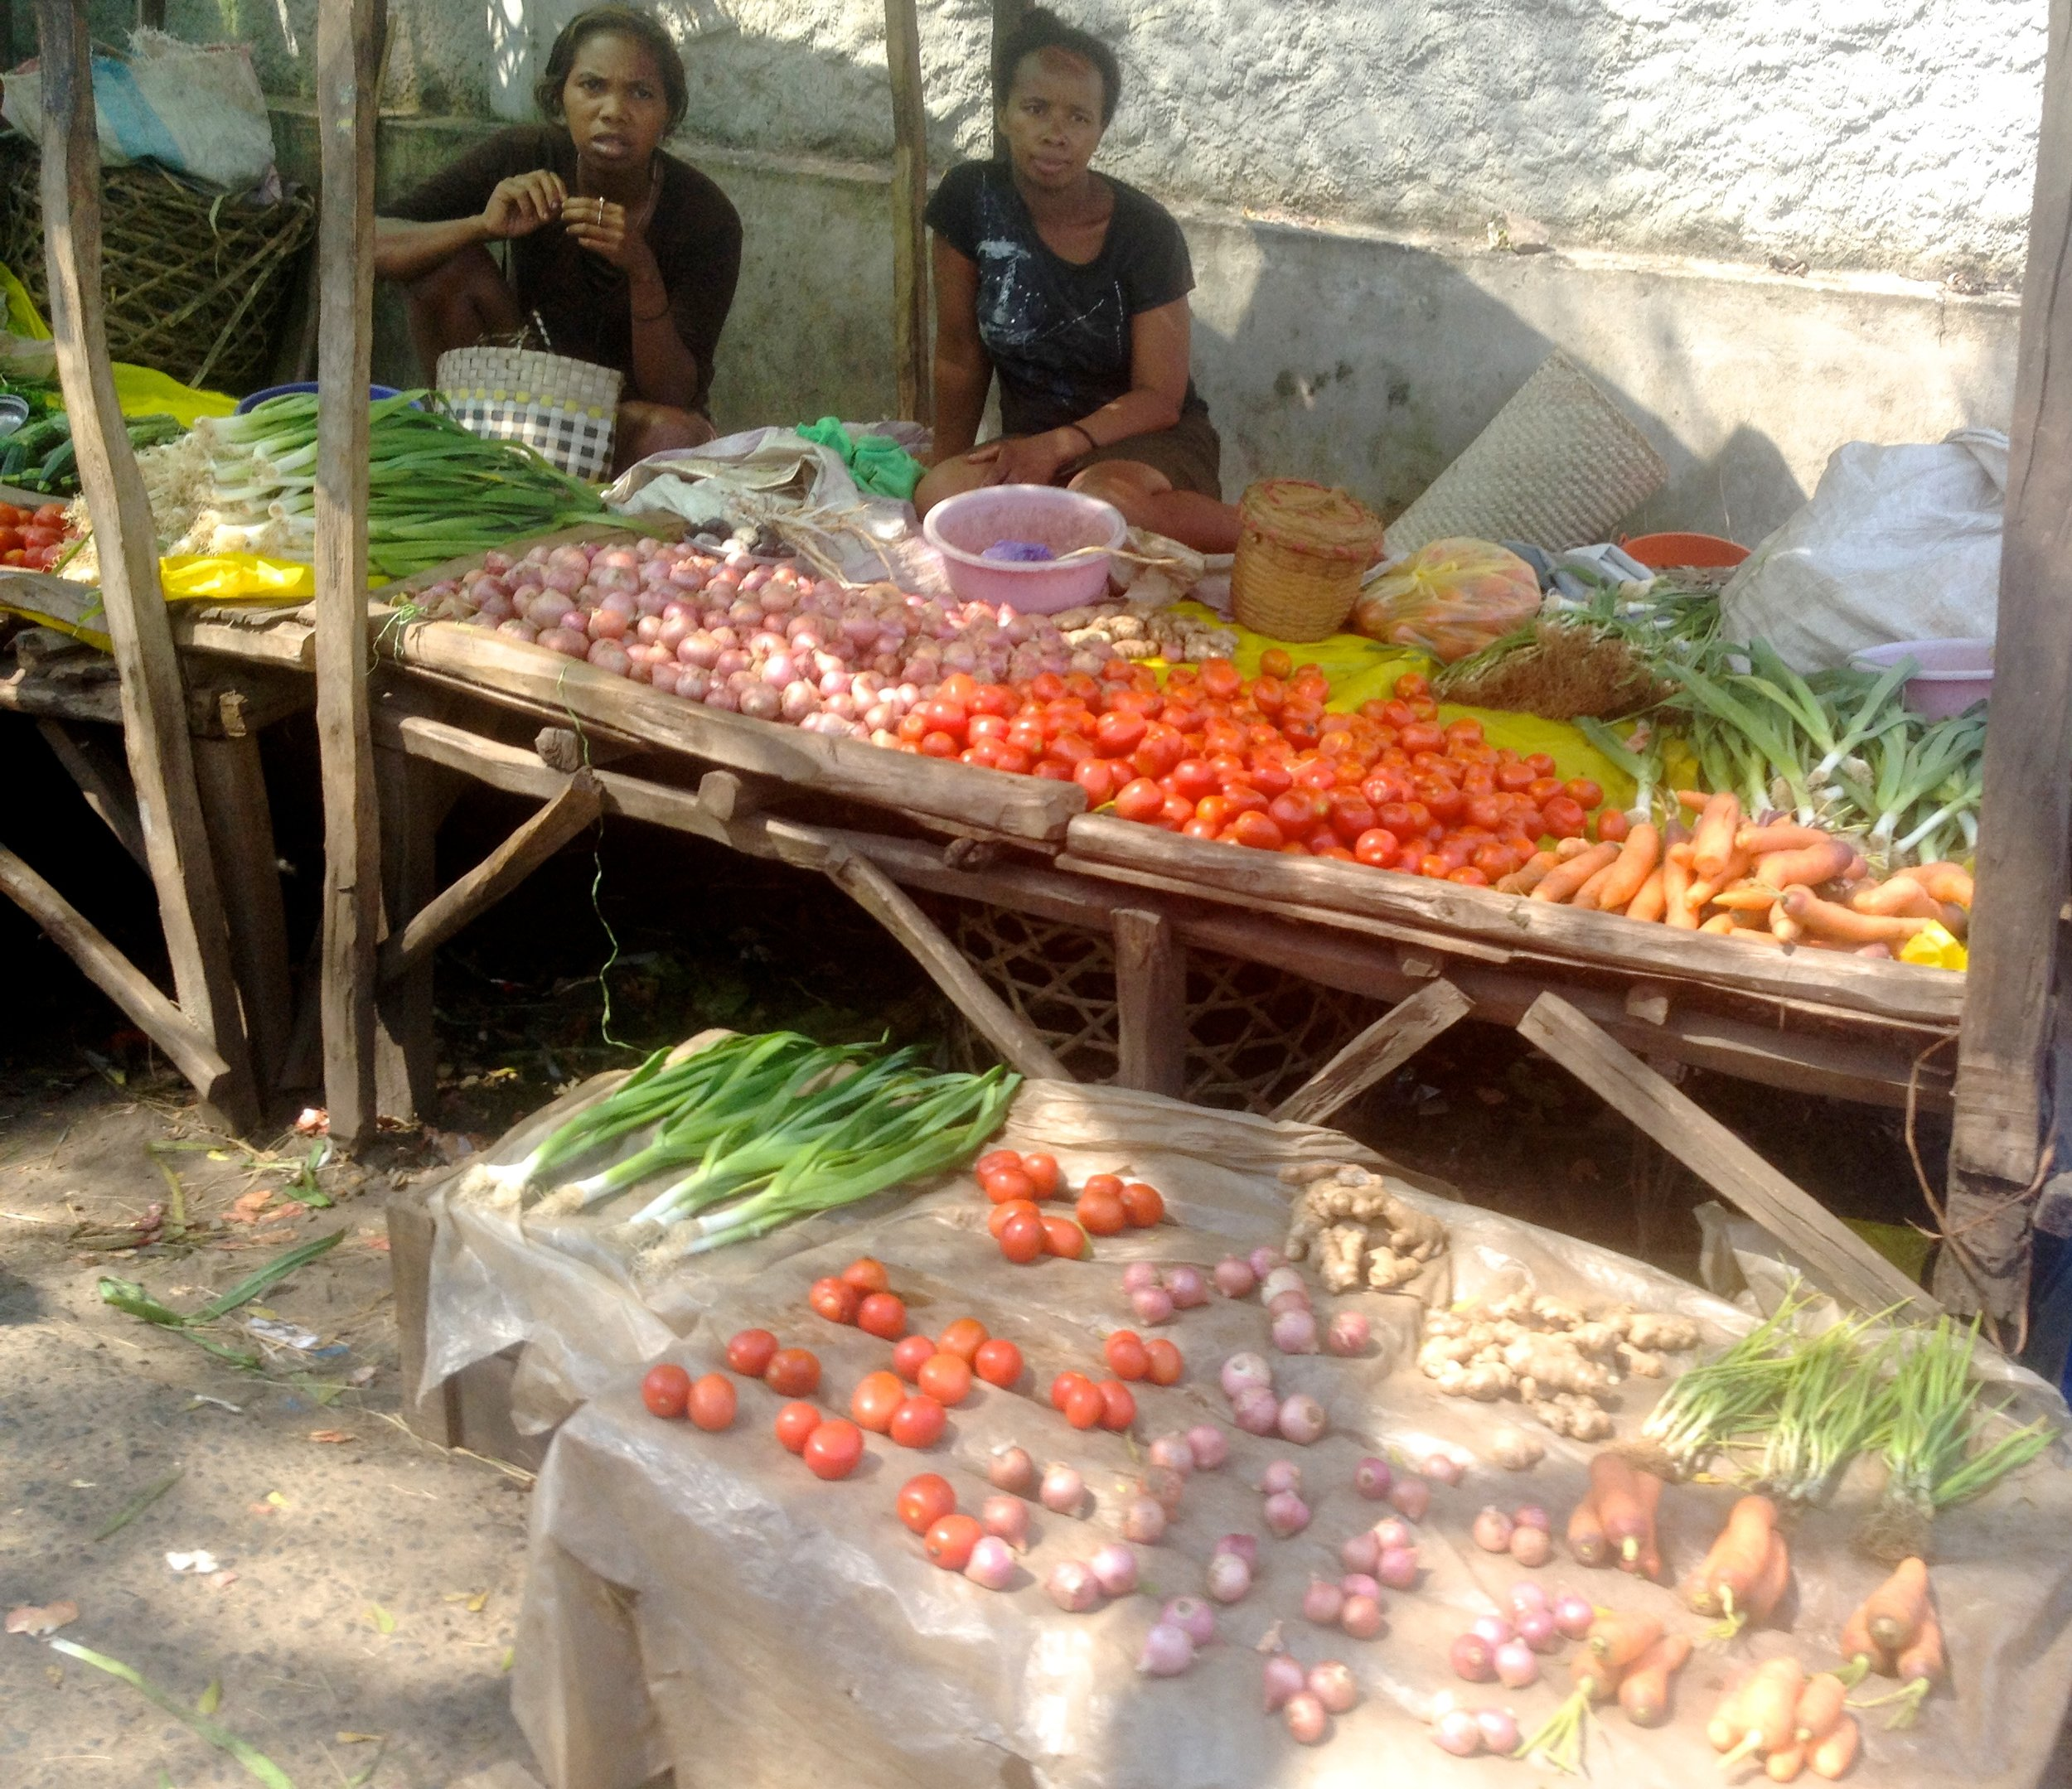 Vegetable stand in Mananjary.